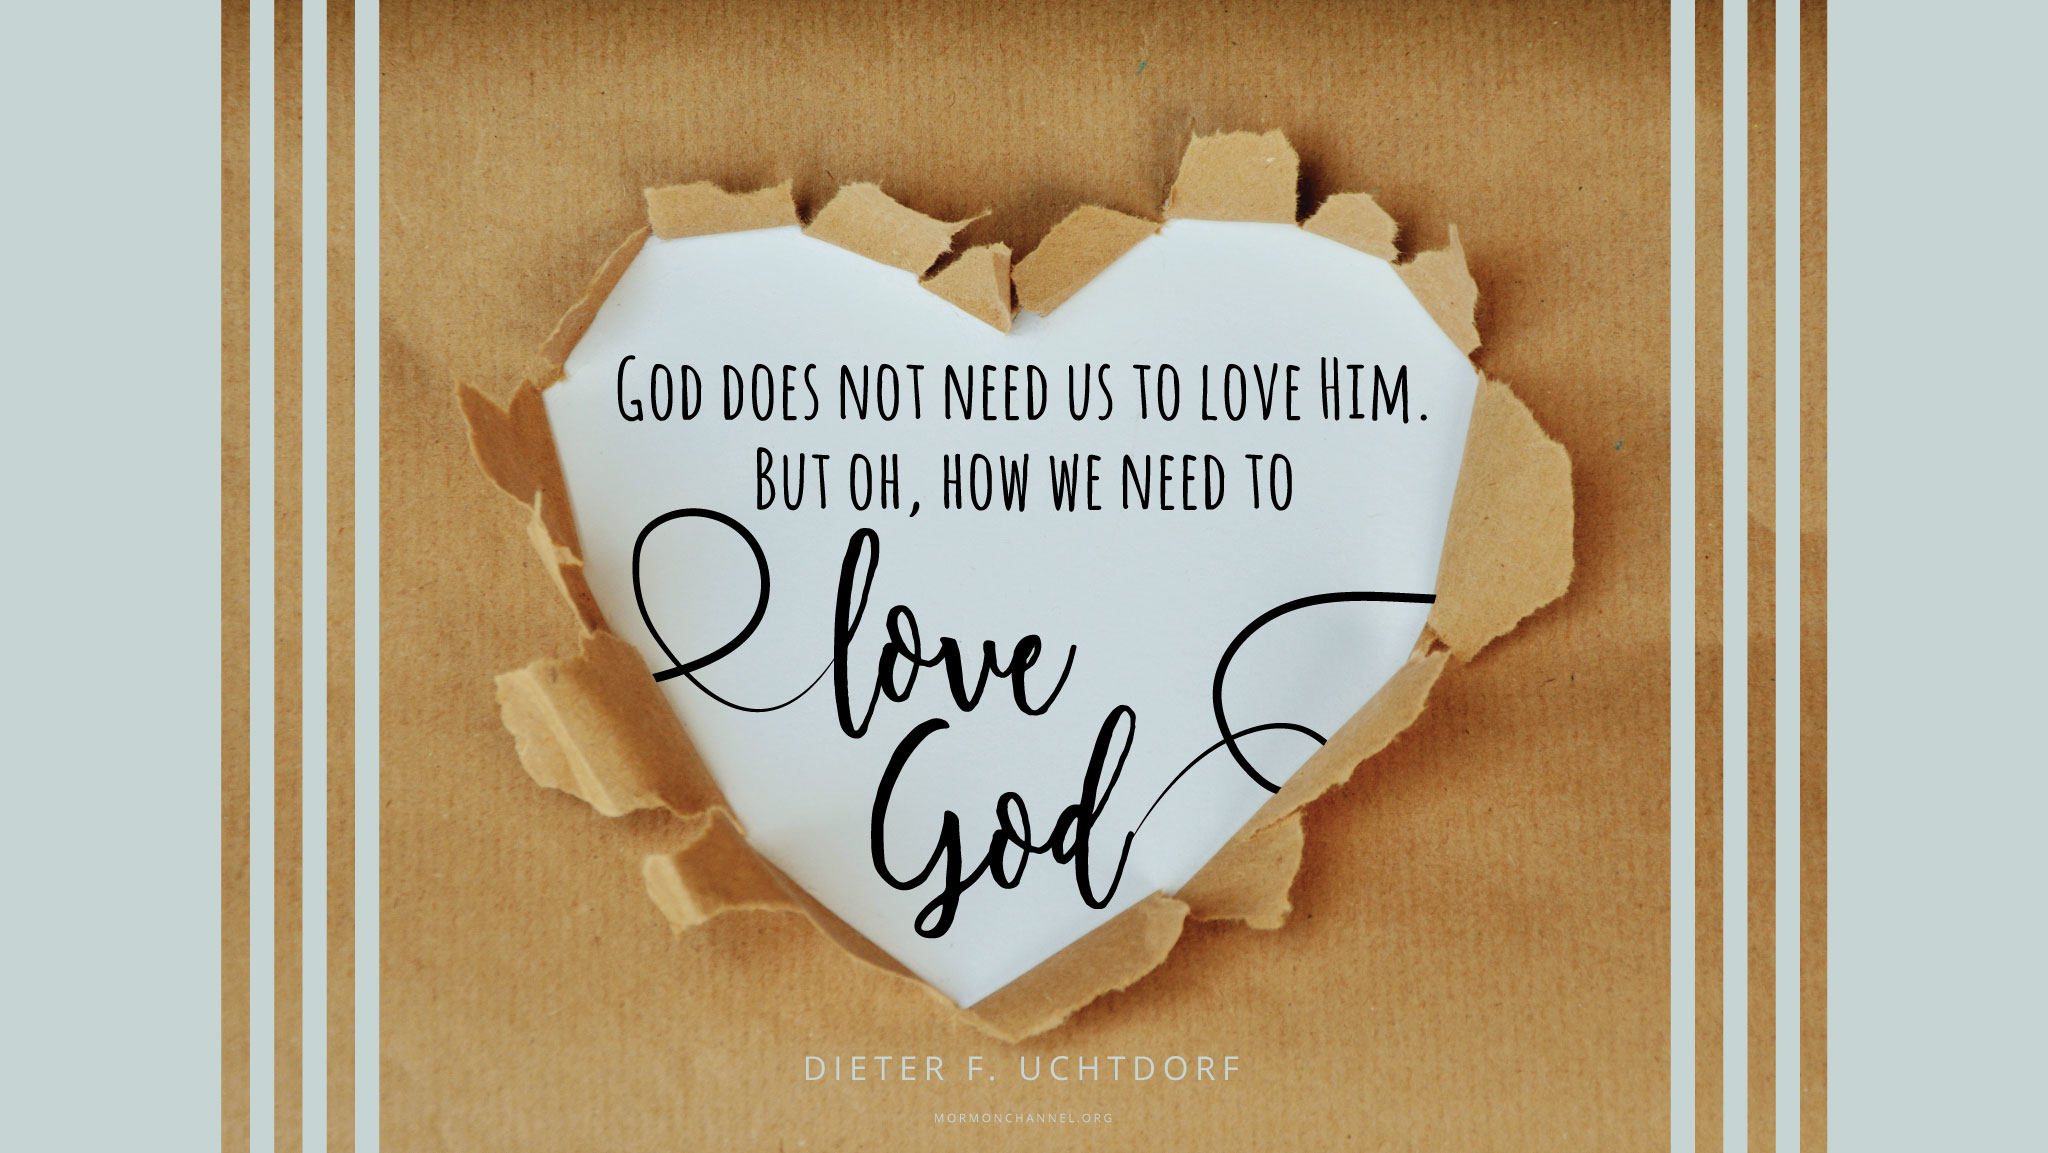 Need Love Quotes For Him Daily Quote God Does Not Need Us To Love Him  Mormon Channel